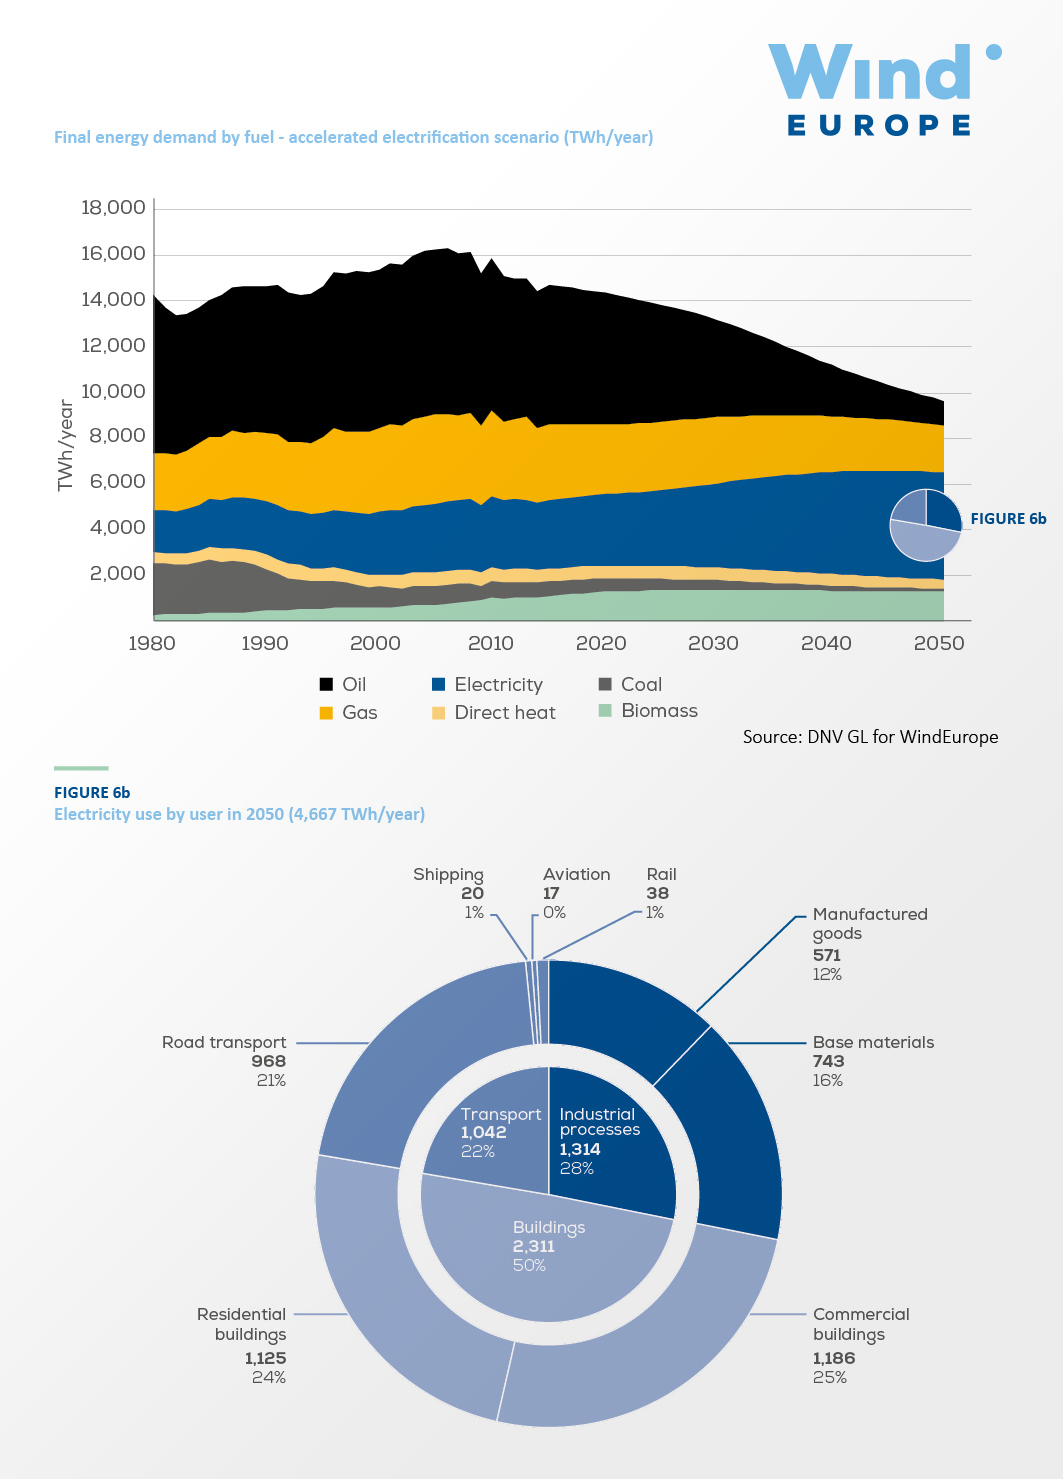 https://windeurope.org/wp-content/uploads/images/about-wind/reports/breaking-new-ground/key-figures/graph06.jpg